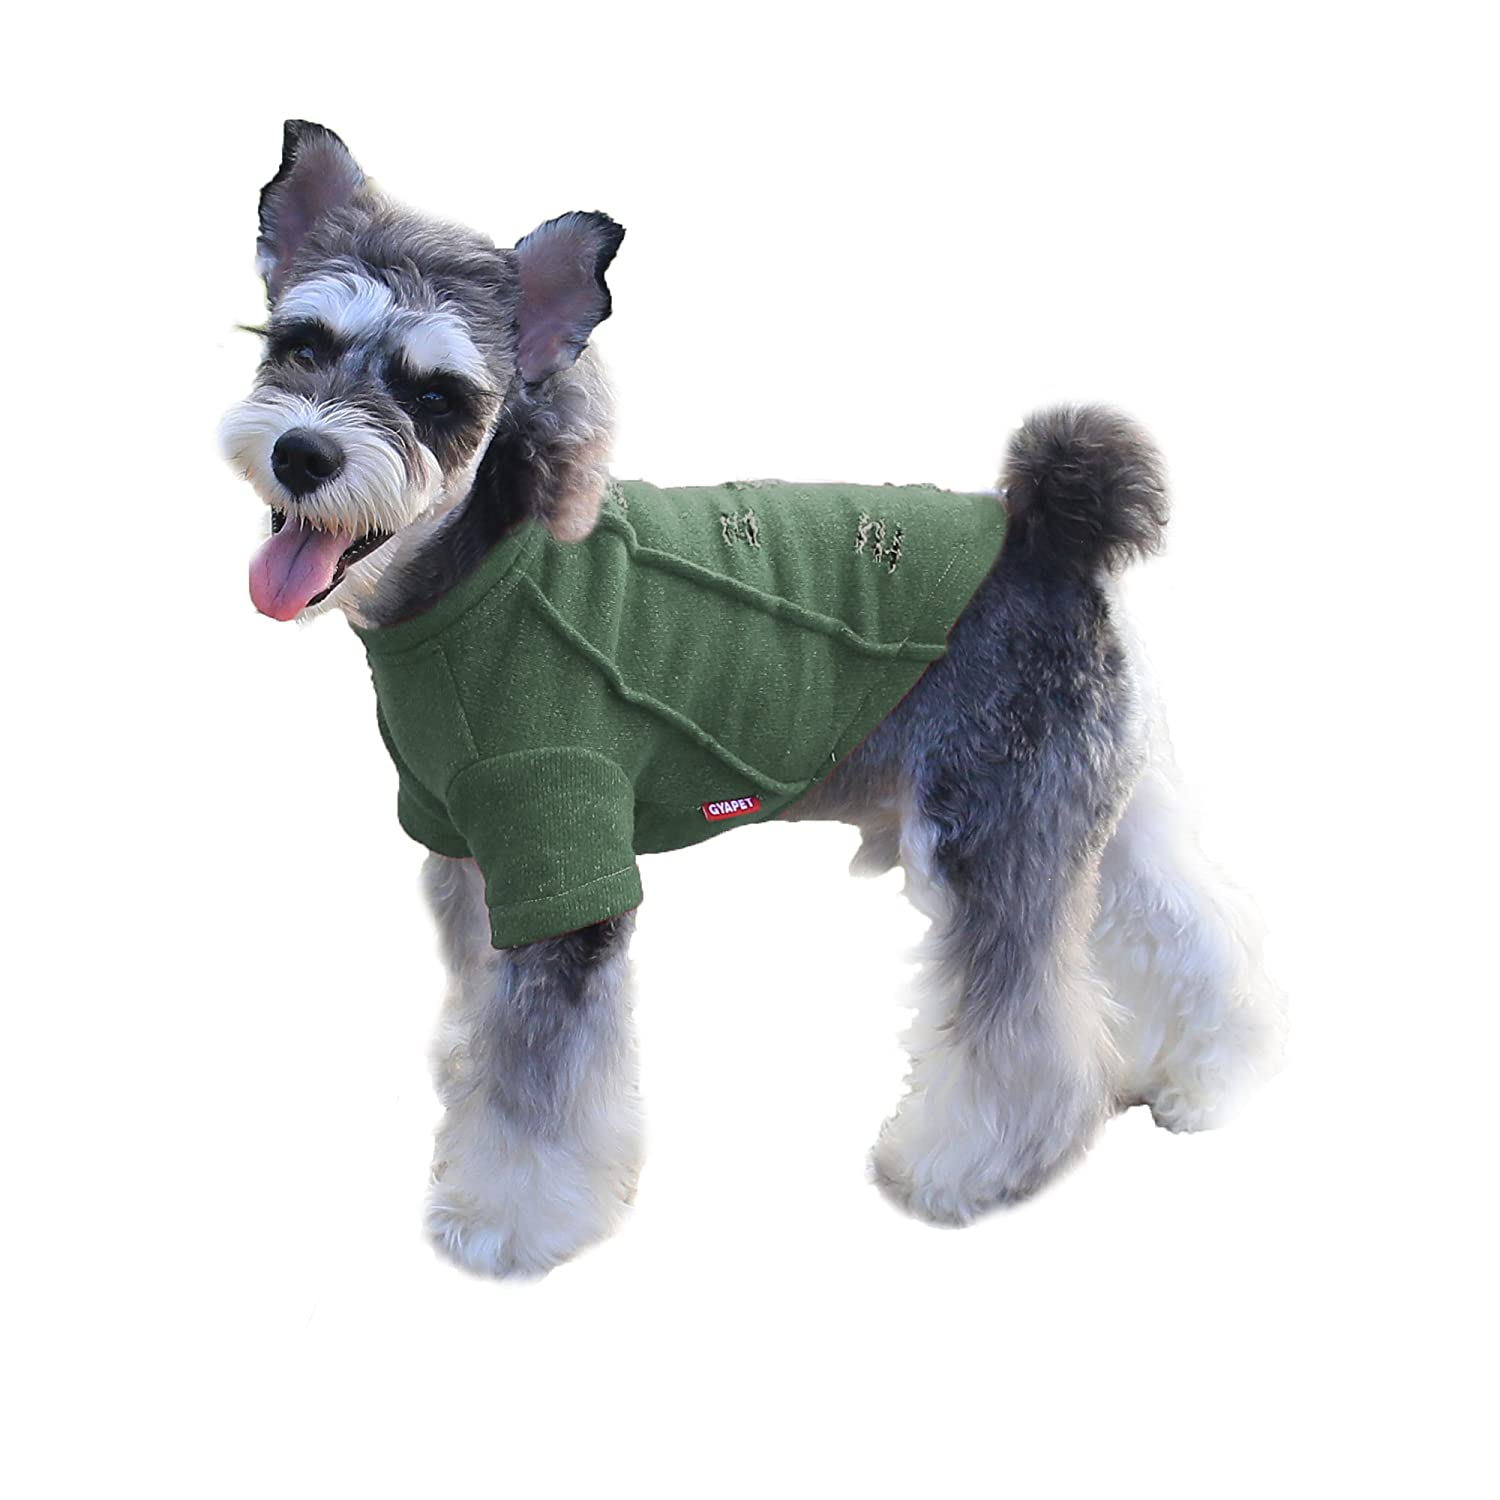 Green T-shirt 2XL-body length 16\ Green T-shirt 2XL-body length 16\ Gyapet Dog Sweater Dog Hoodie Christmas for Small Pets Red Shirt Winter Warm Outfits Cloth Pet Puppy Green 2XL